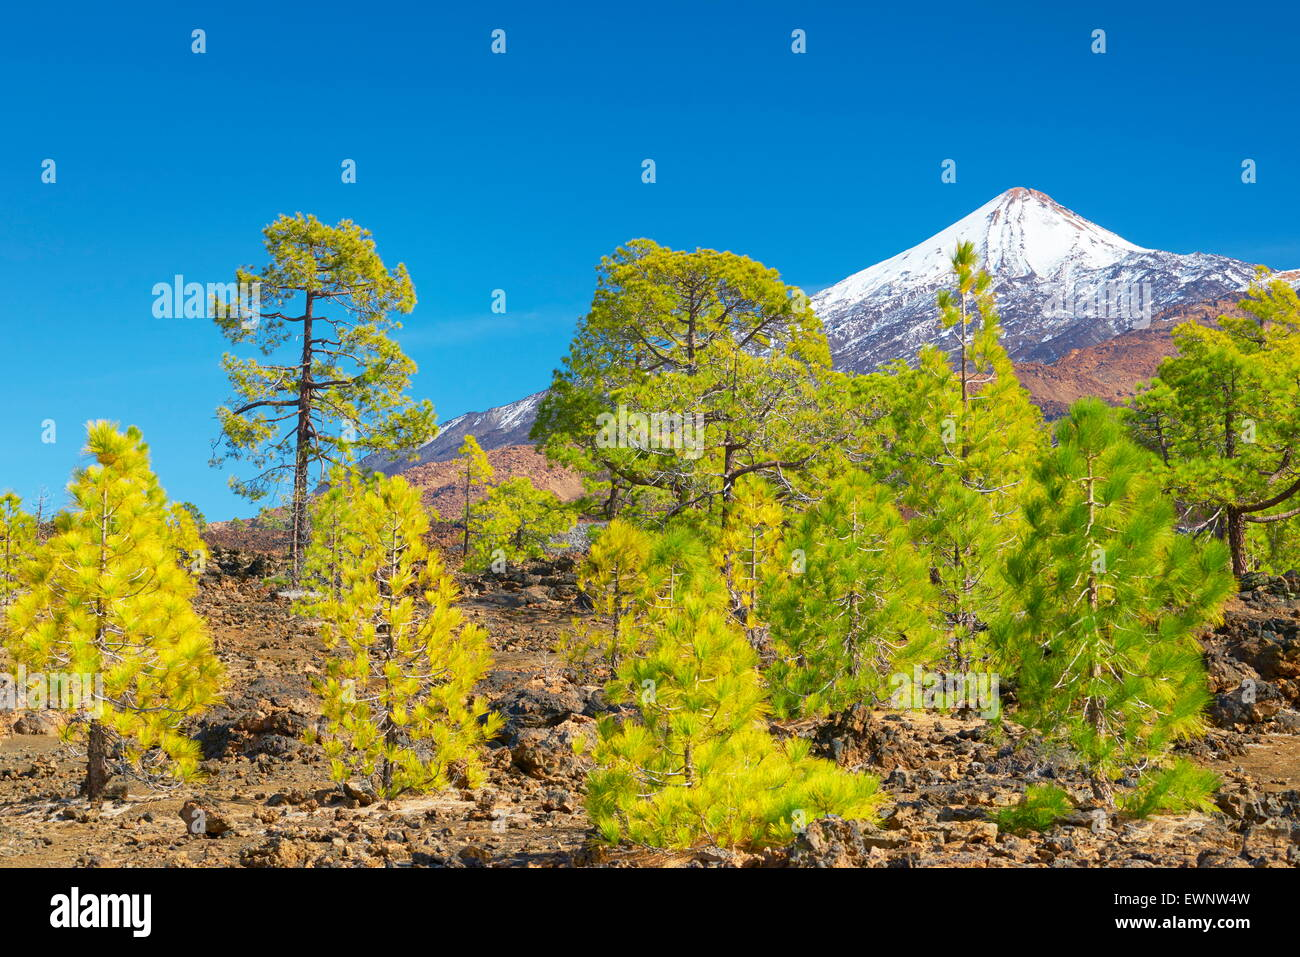 Tenerife - view of Teide Mount, Canary Islands, Spain - Stock Image